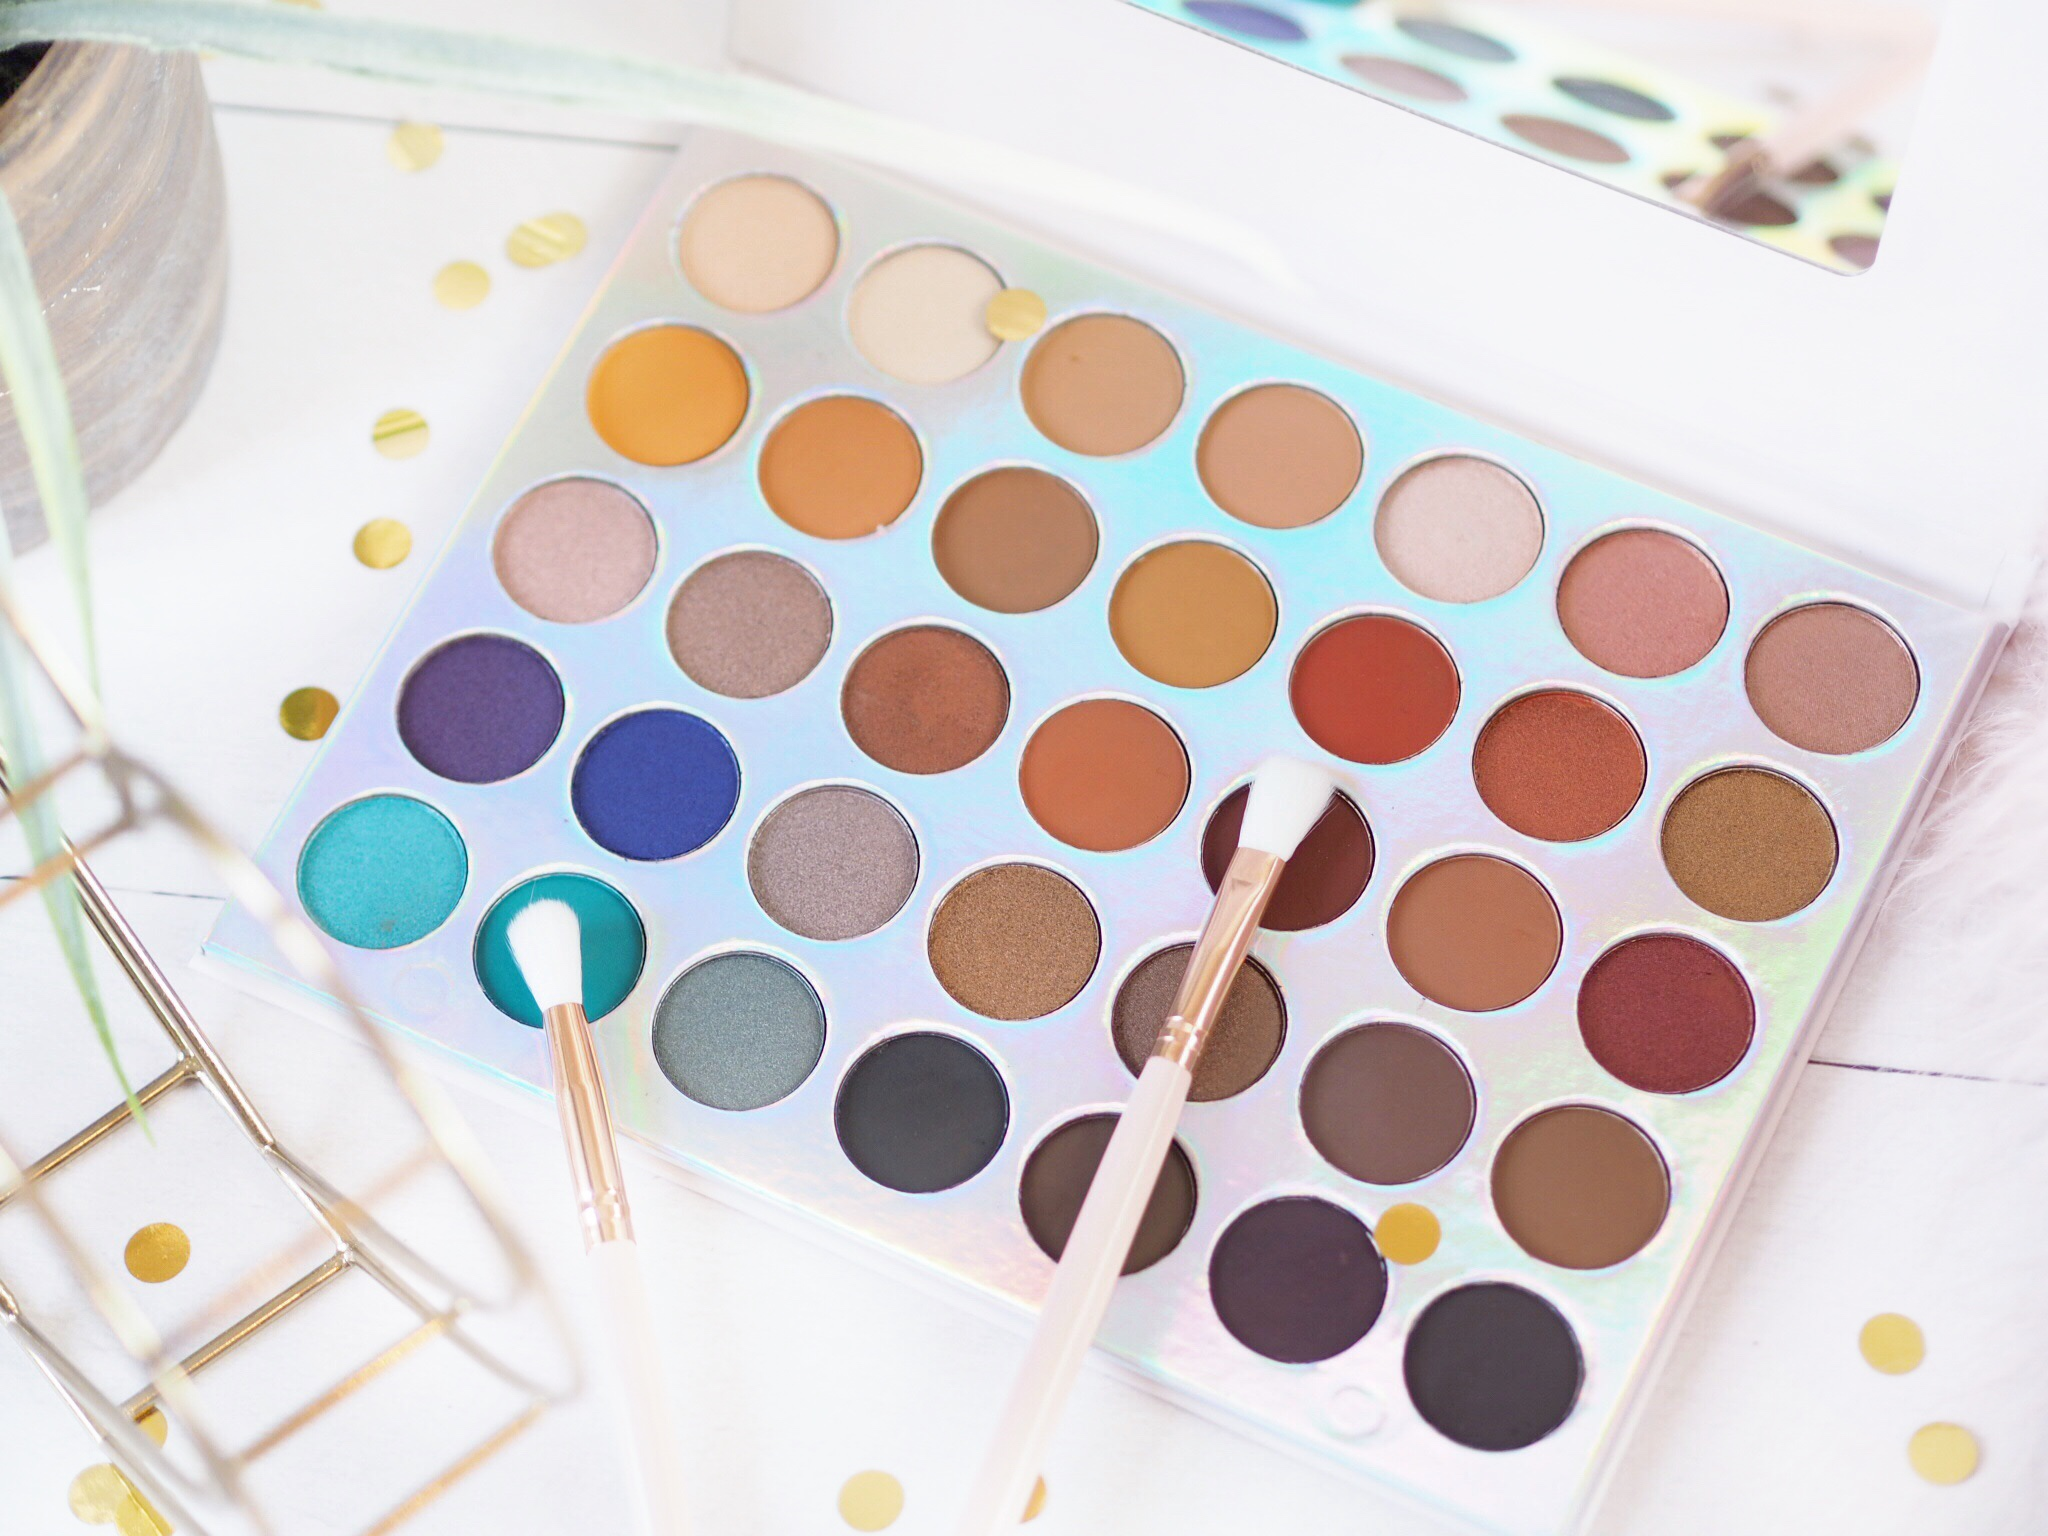 Crown Brush OMG Palette Review